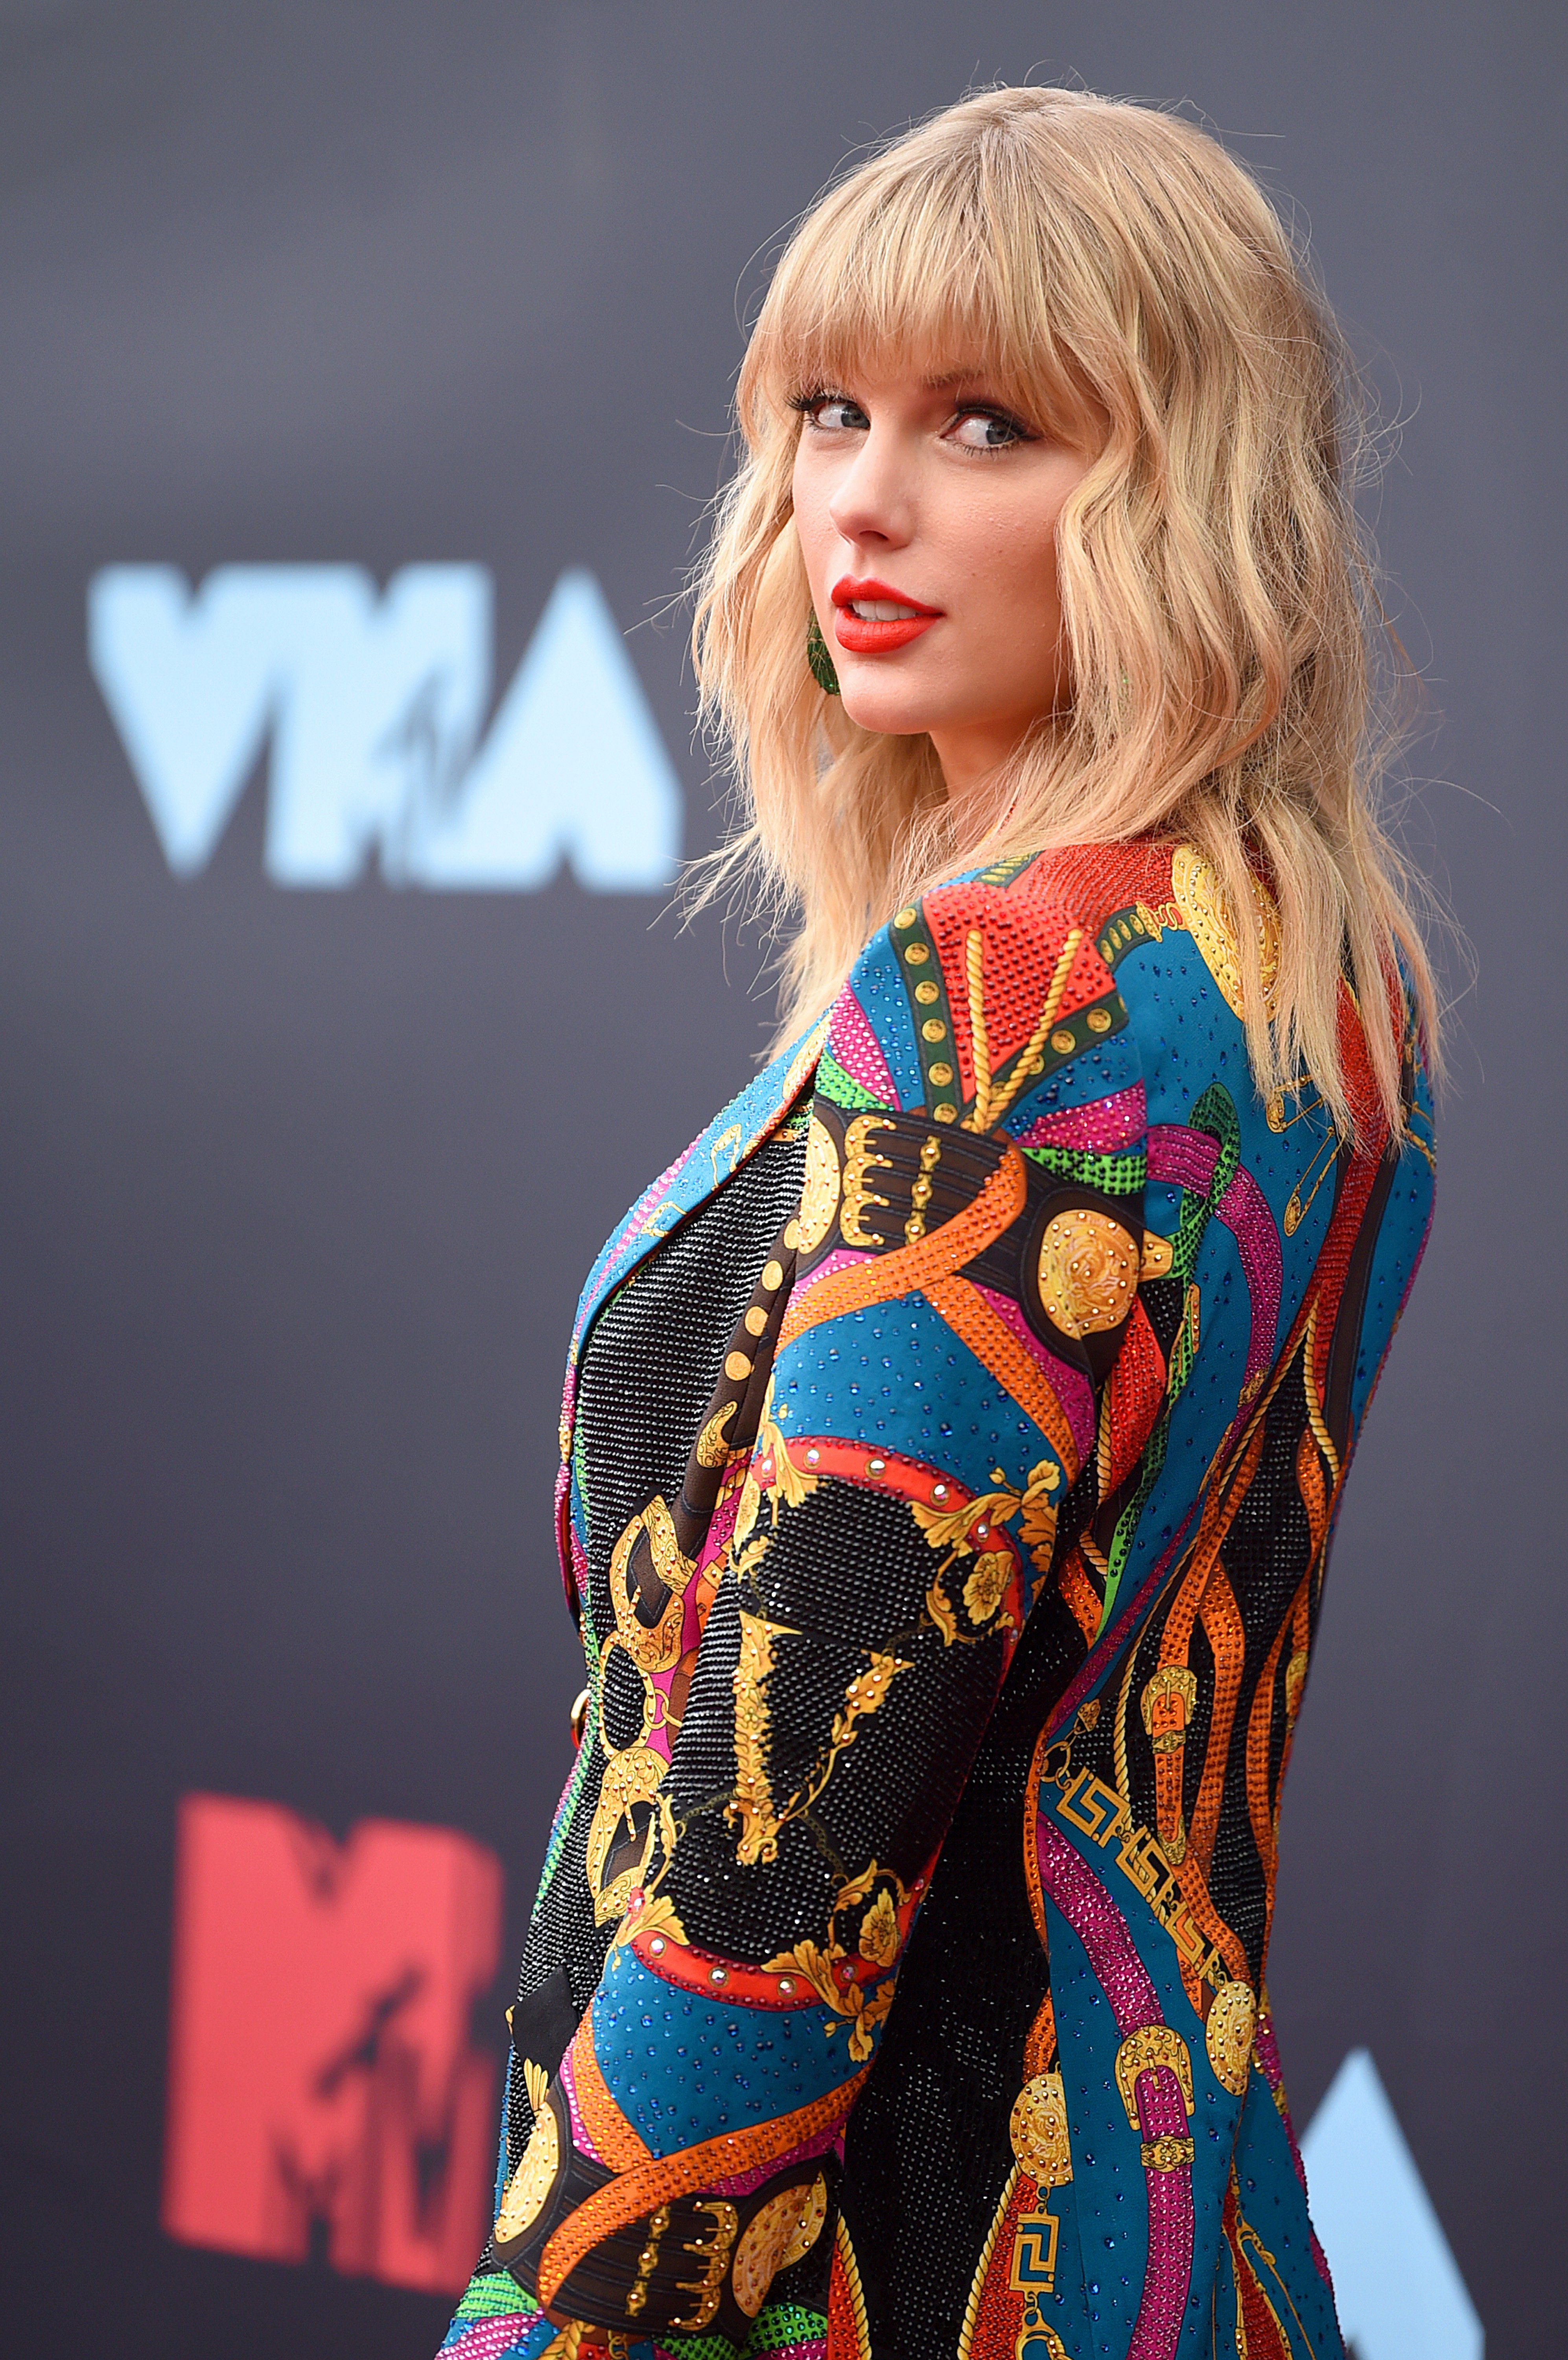 Taylor Swift attends the MTV Video Music Awards in Newark, New Jersey on August 26, 2019   Photo: Getty Images